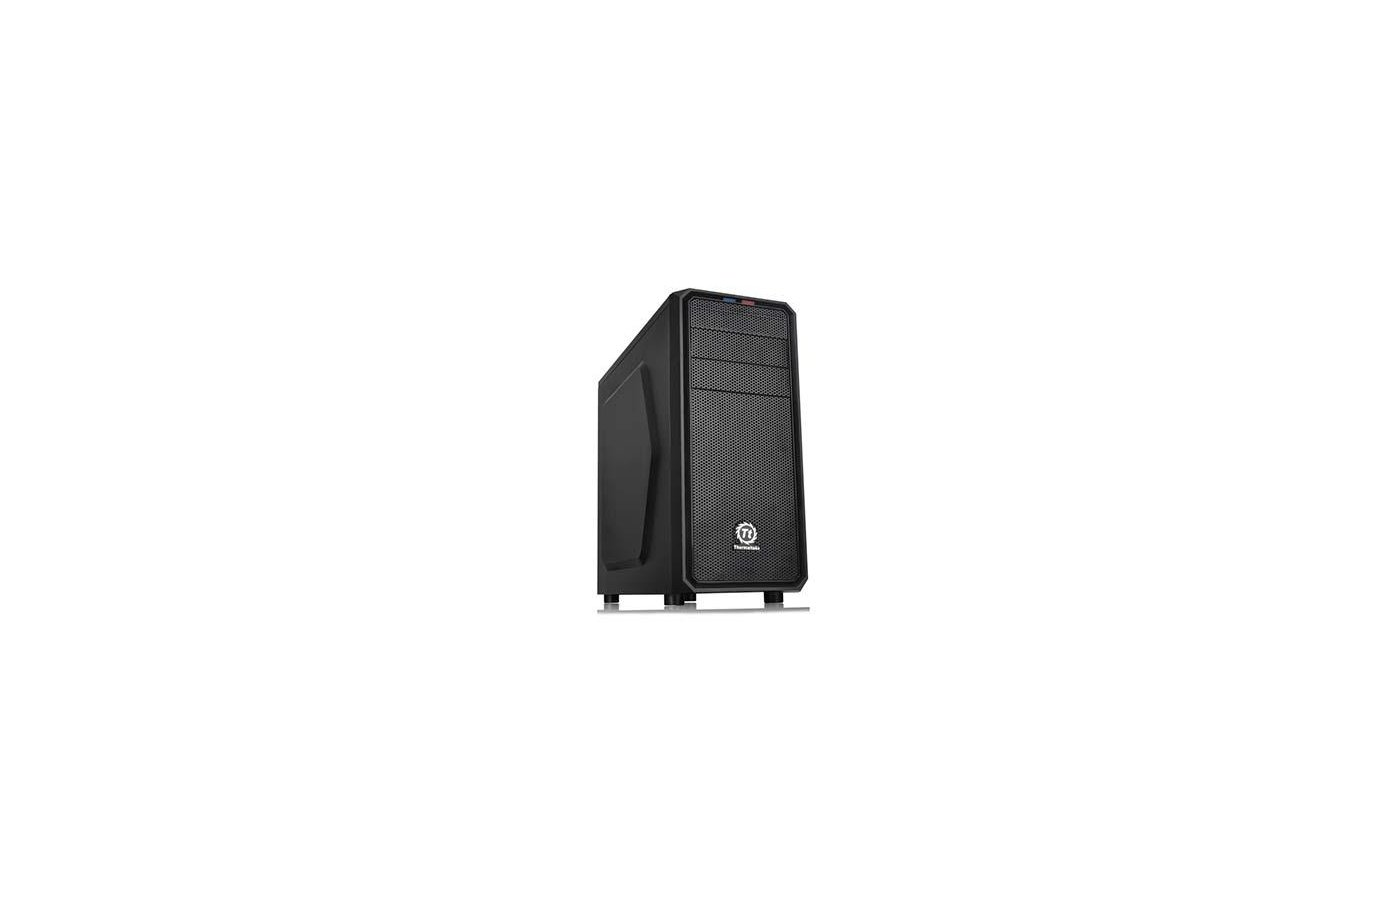 Корпус Thermaltake Versa H25 черный без БП ATX 4x120mm 1xUSB2.0 1xUSB3.0 audio bott PSU